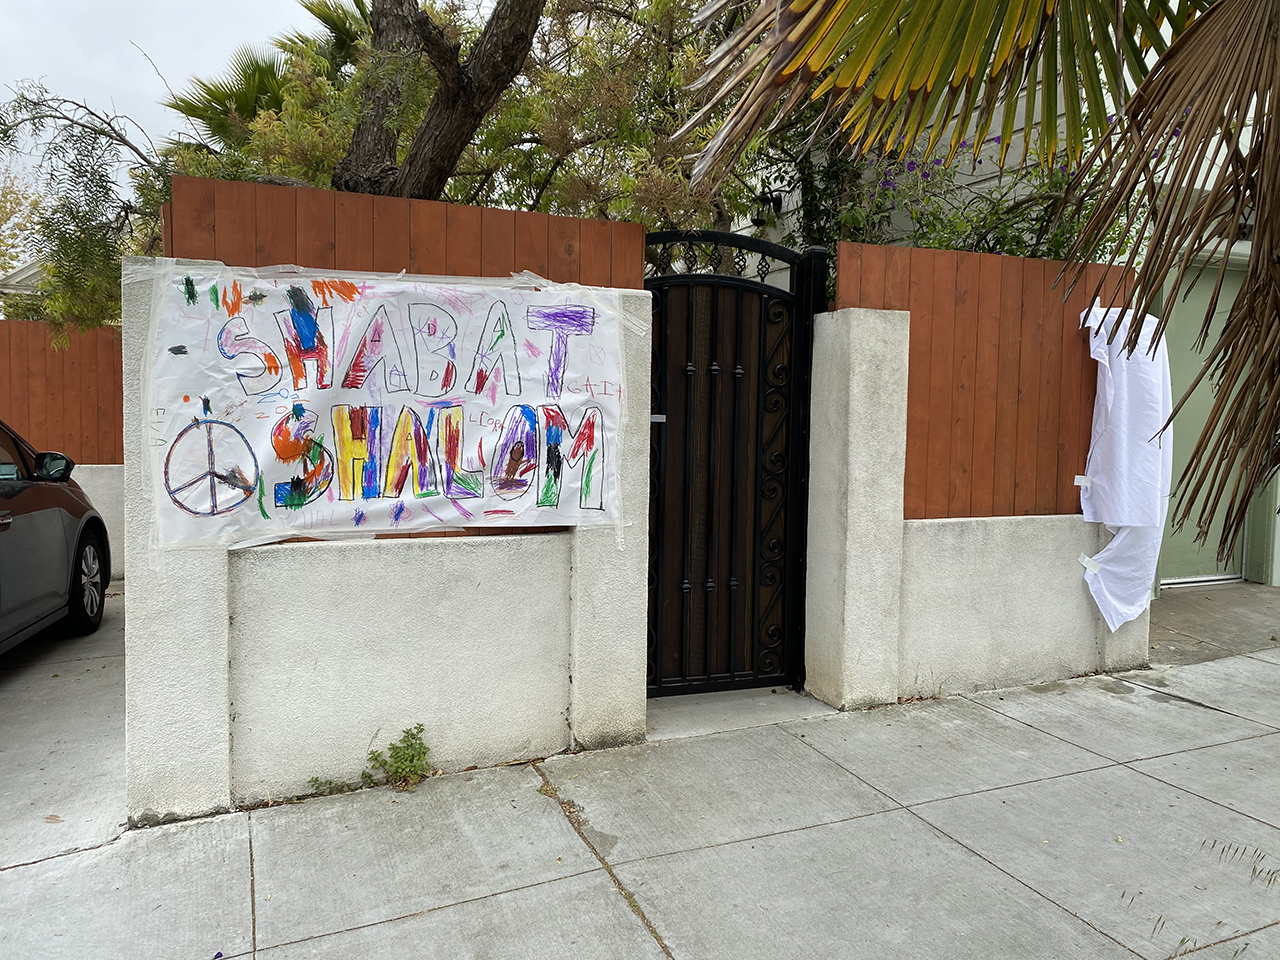 Following the appearance of anti-Israel graffiti at Gan Noe Preschool, the children decorated a banner offering Shabbat greetings to the neighborhood.